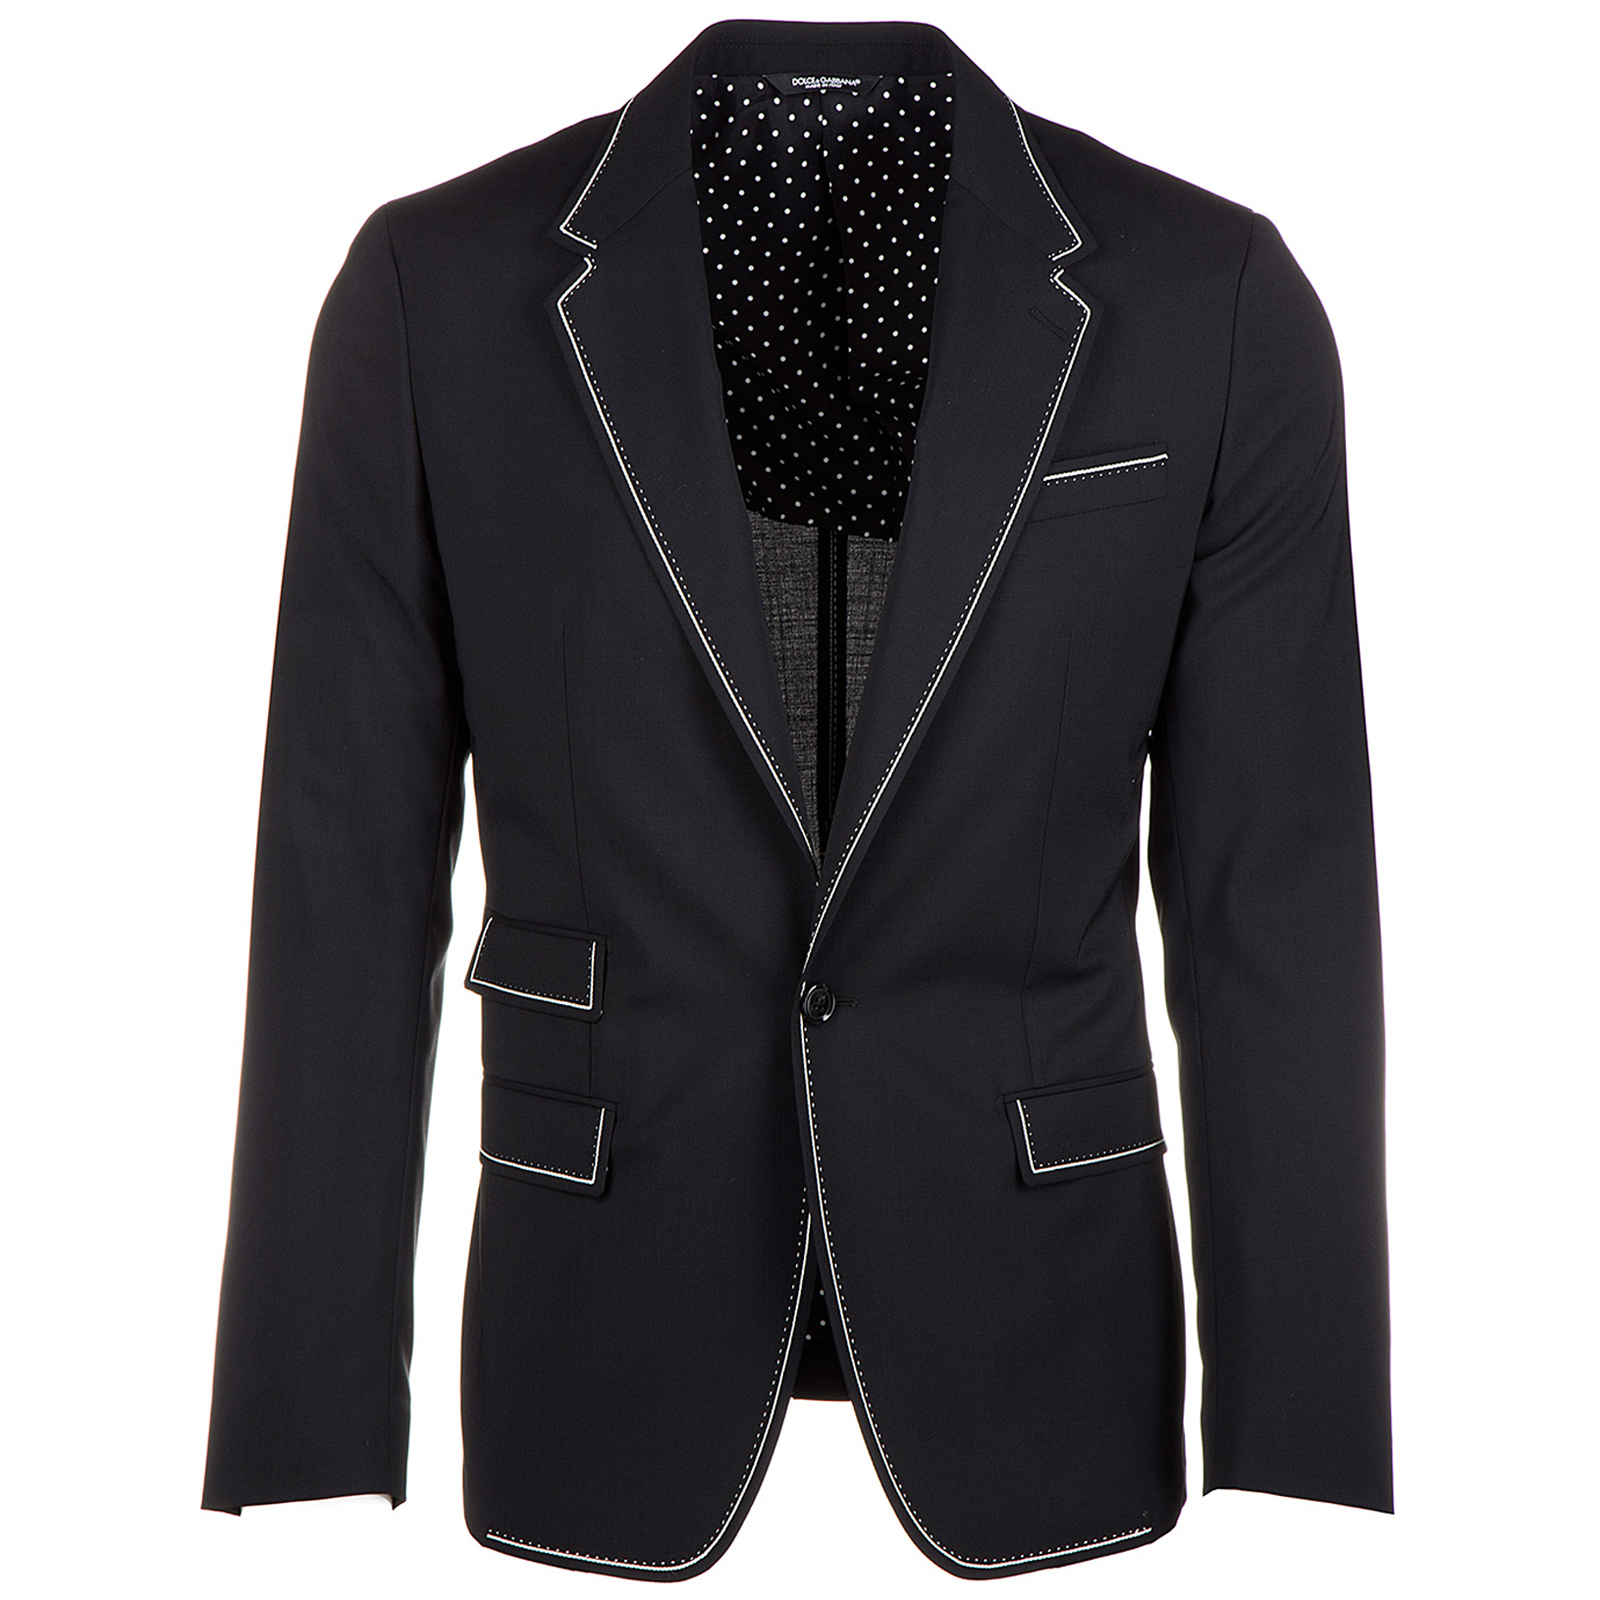 Men's wool jacket blazer